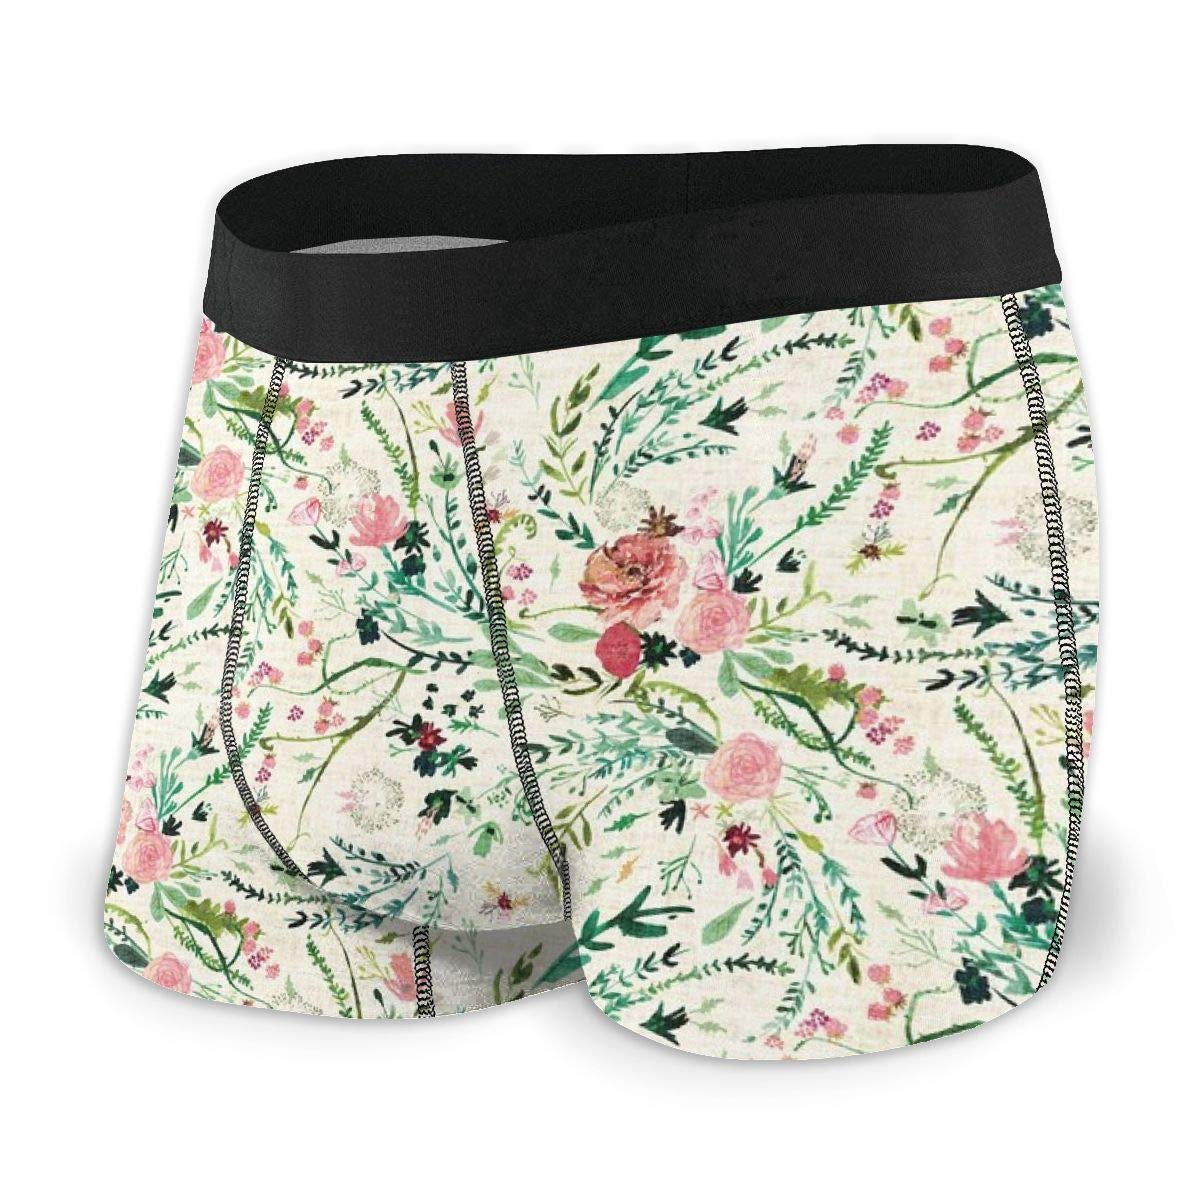 MED Cream Mens no Ride-up Boxer Briefs,Fable Spring Floral /_1302